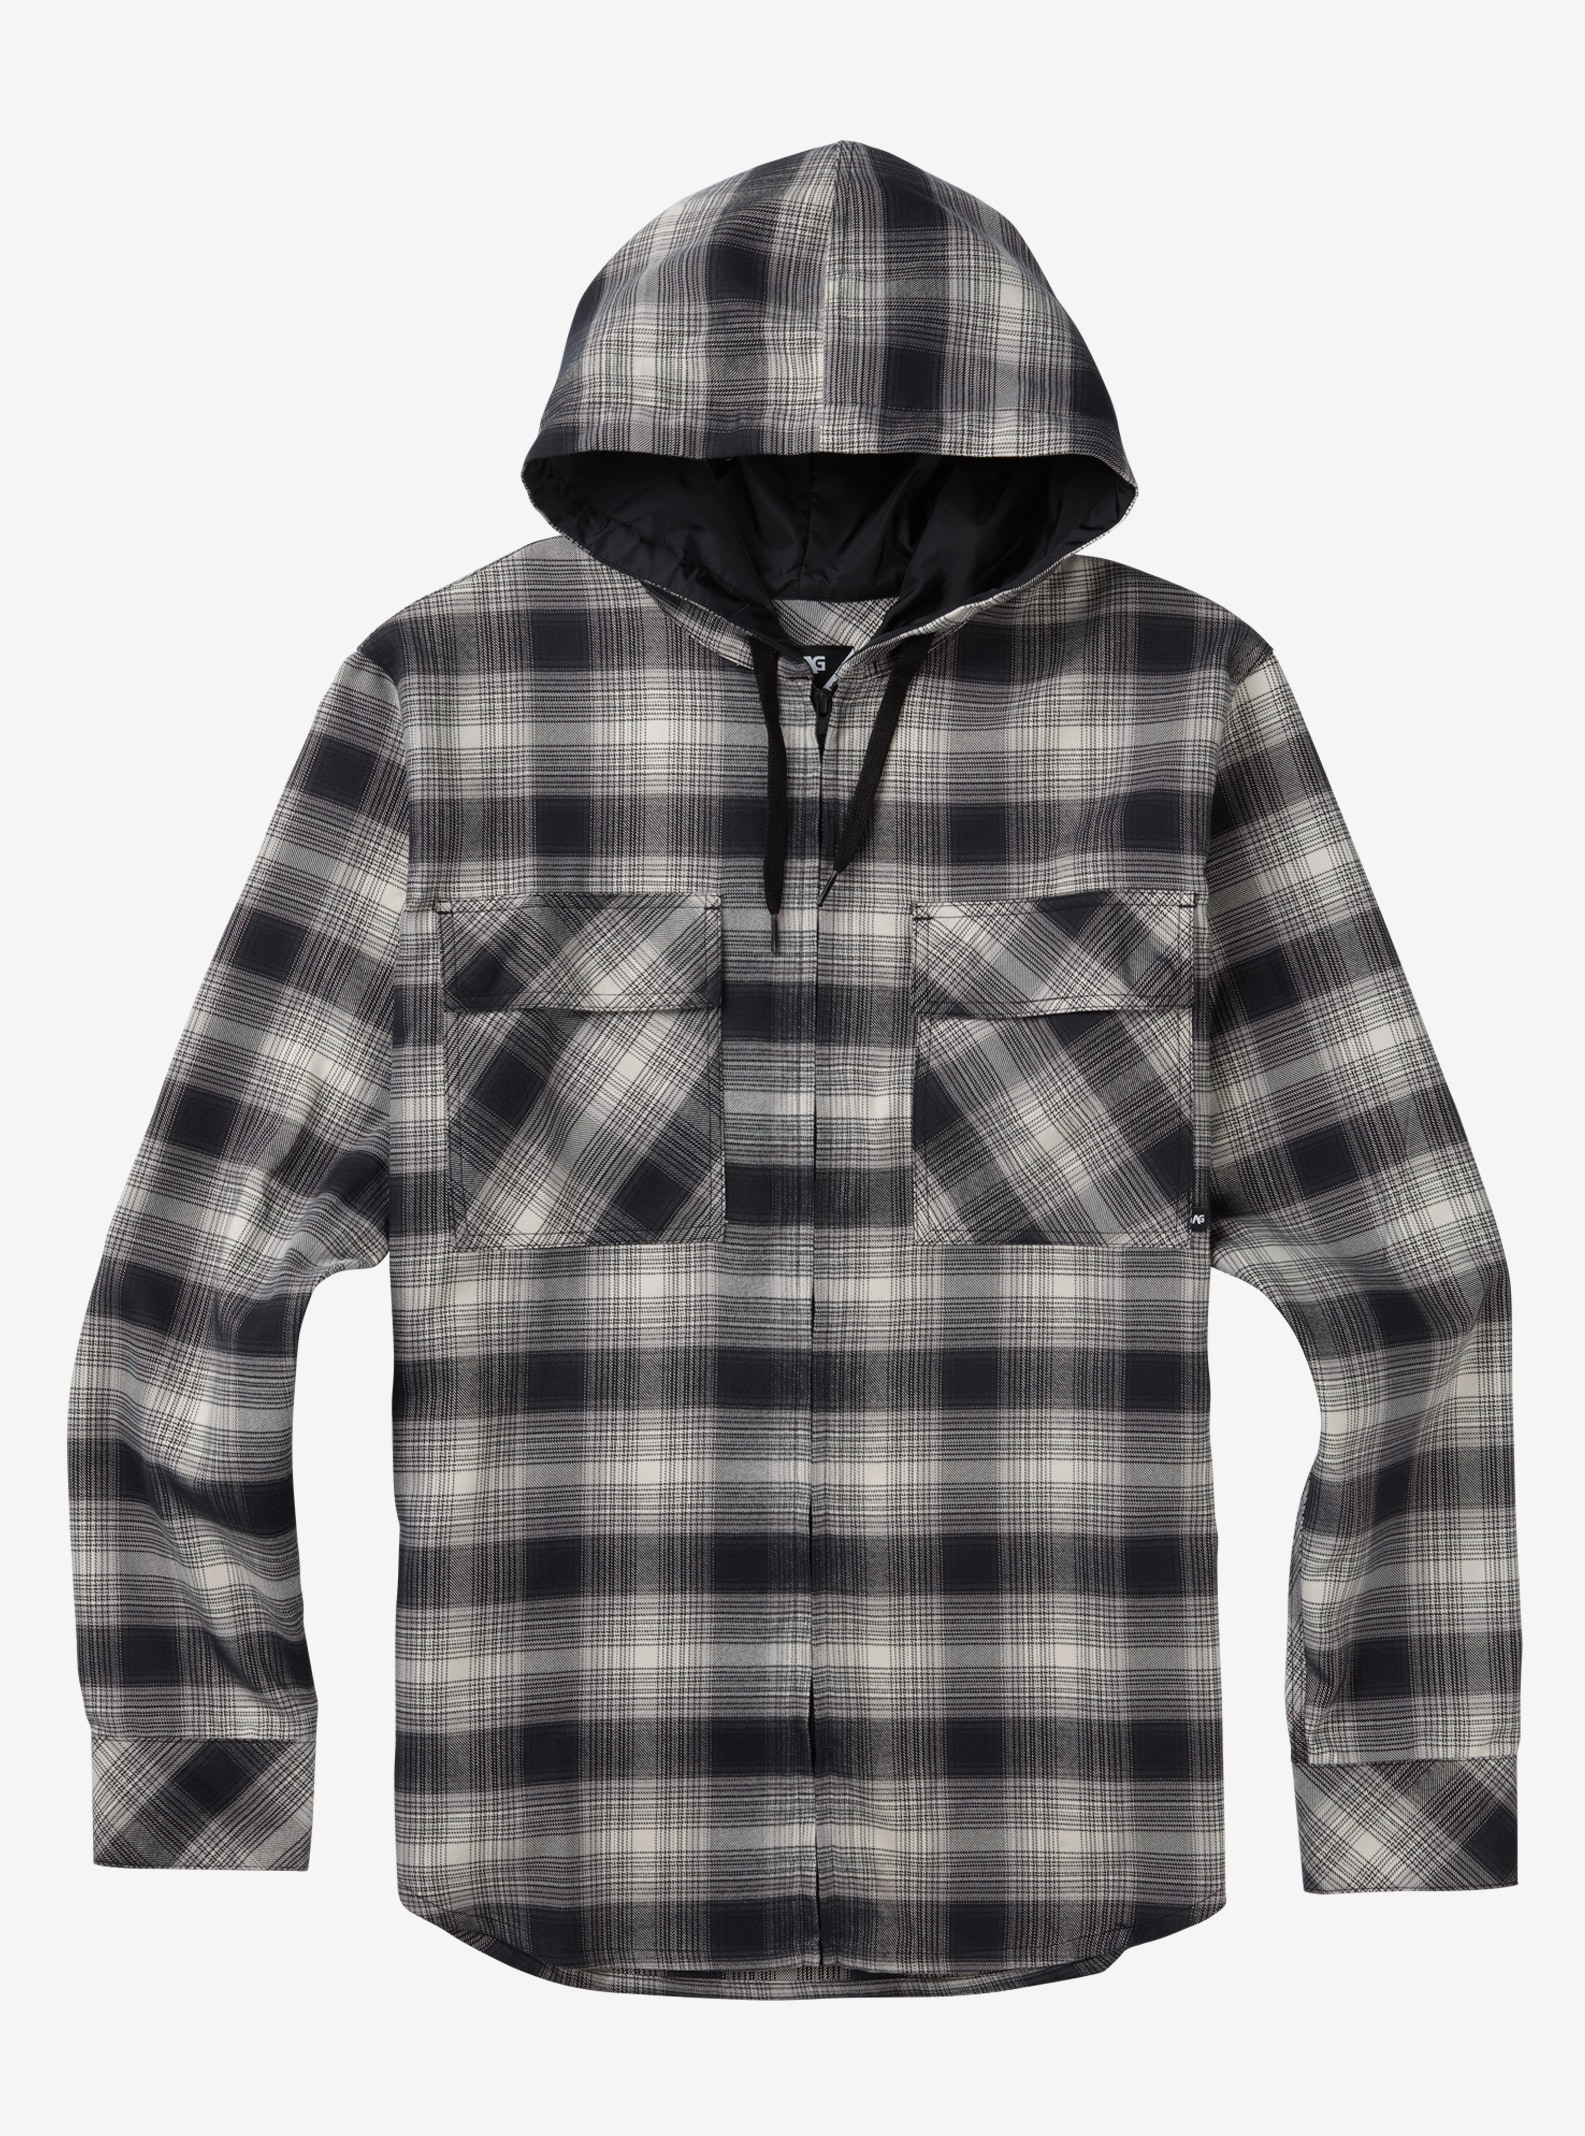 Men's Analog ATF Kaiden Hooded Flannel shown in True Black Pacific Plaid